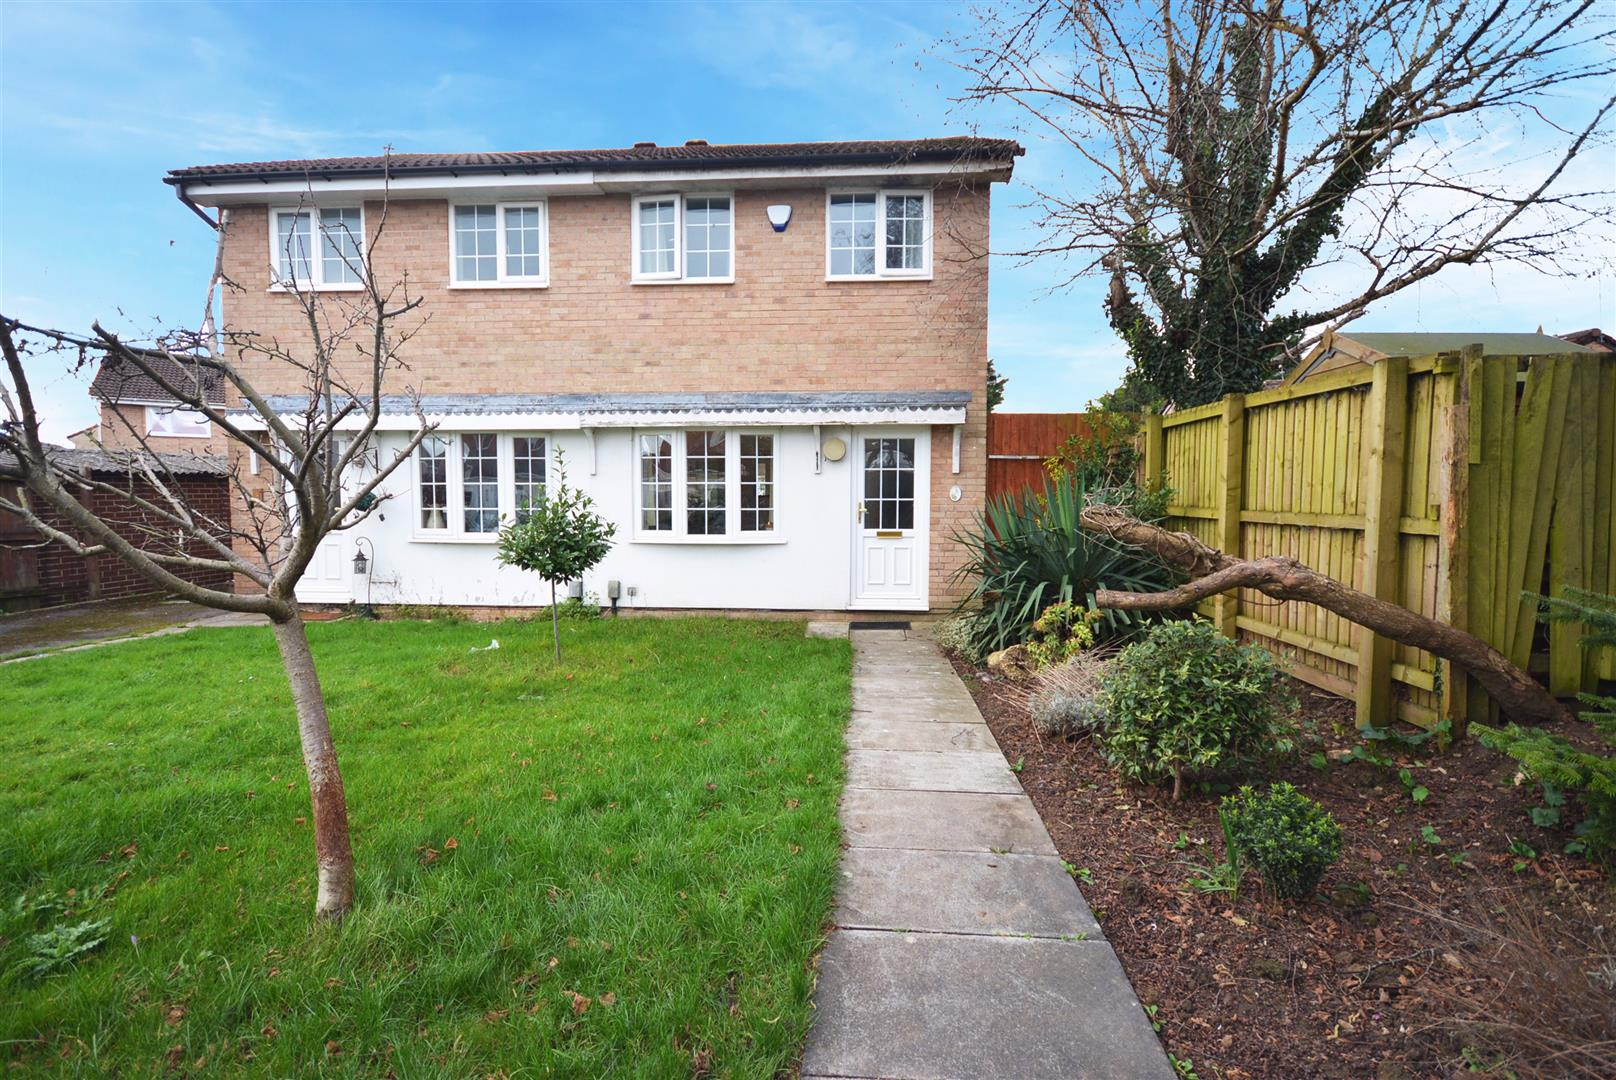 2 bed semi-detached house to rent in Caradoc Close, Cardiff, CF3